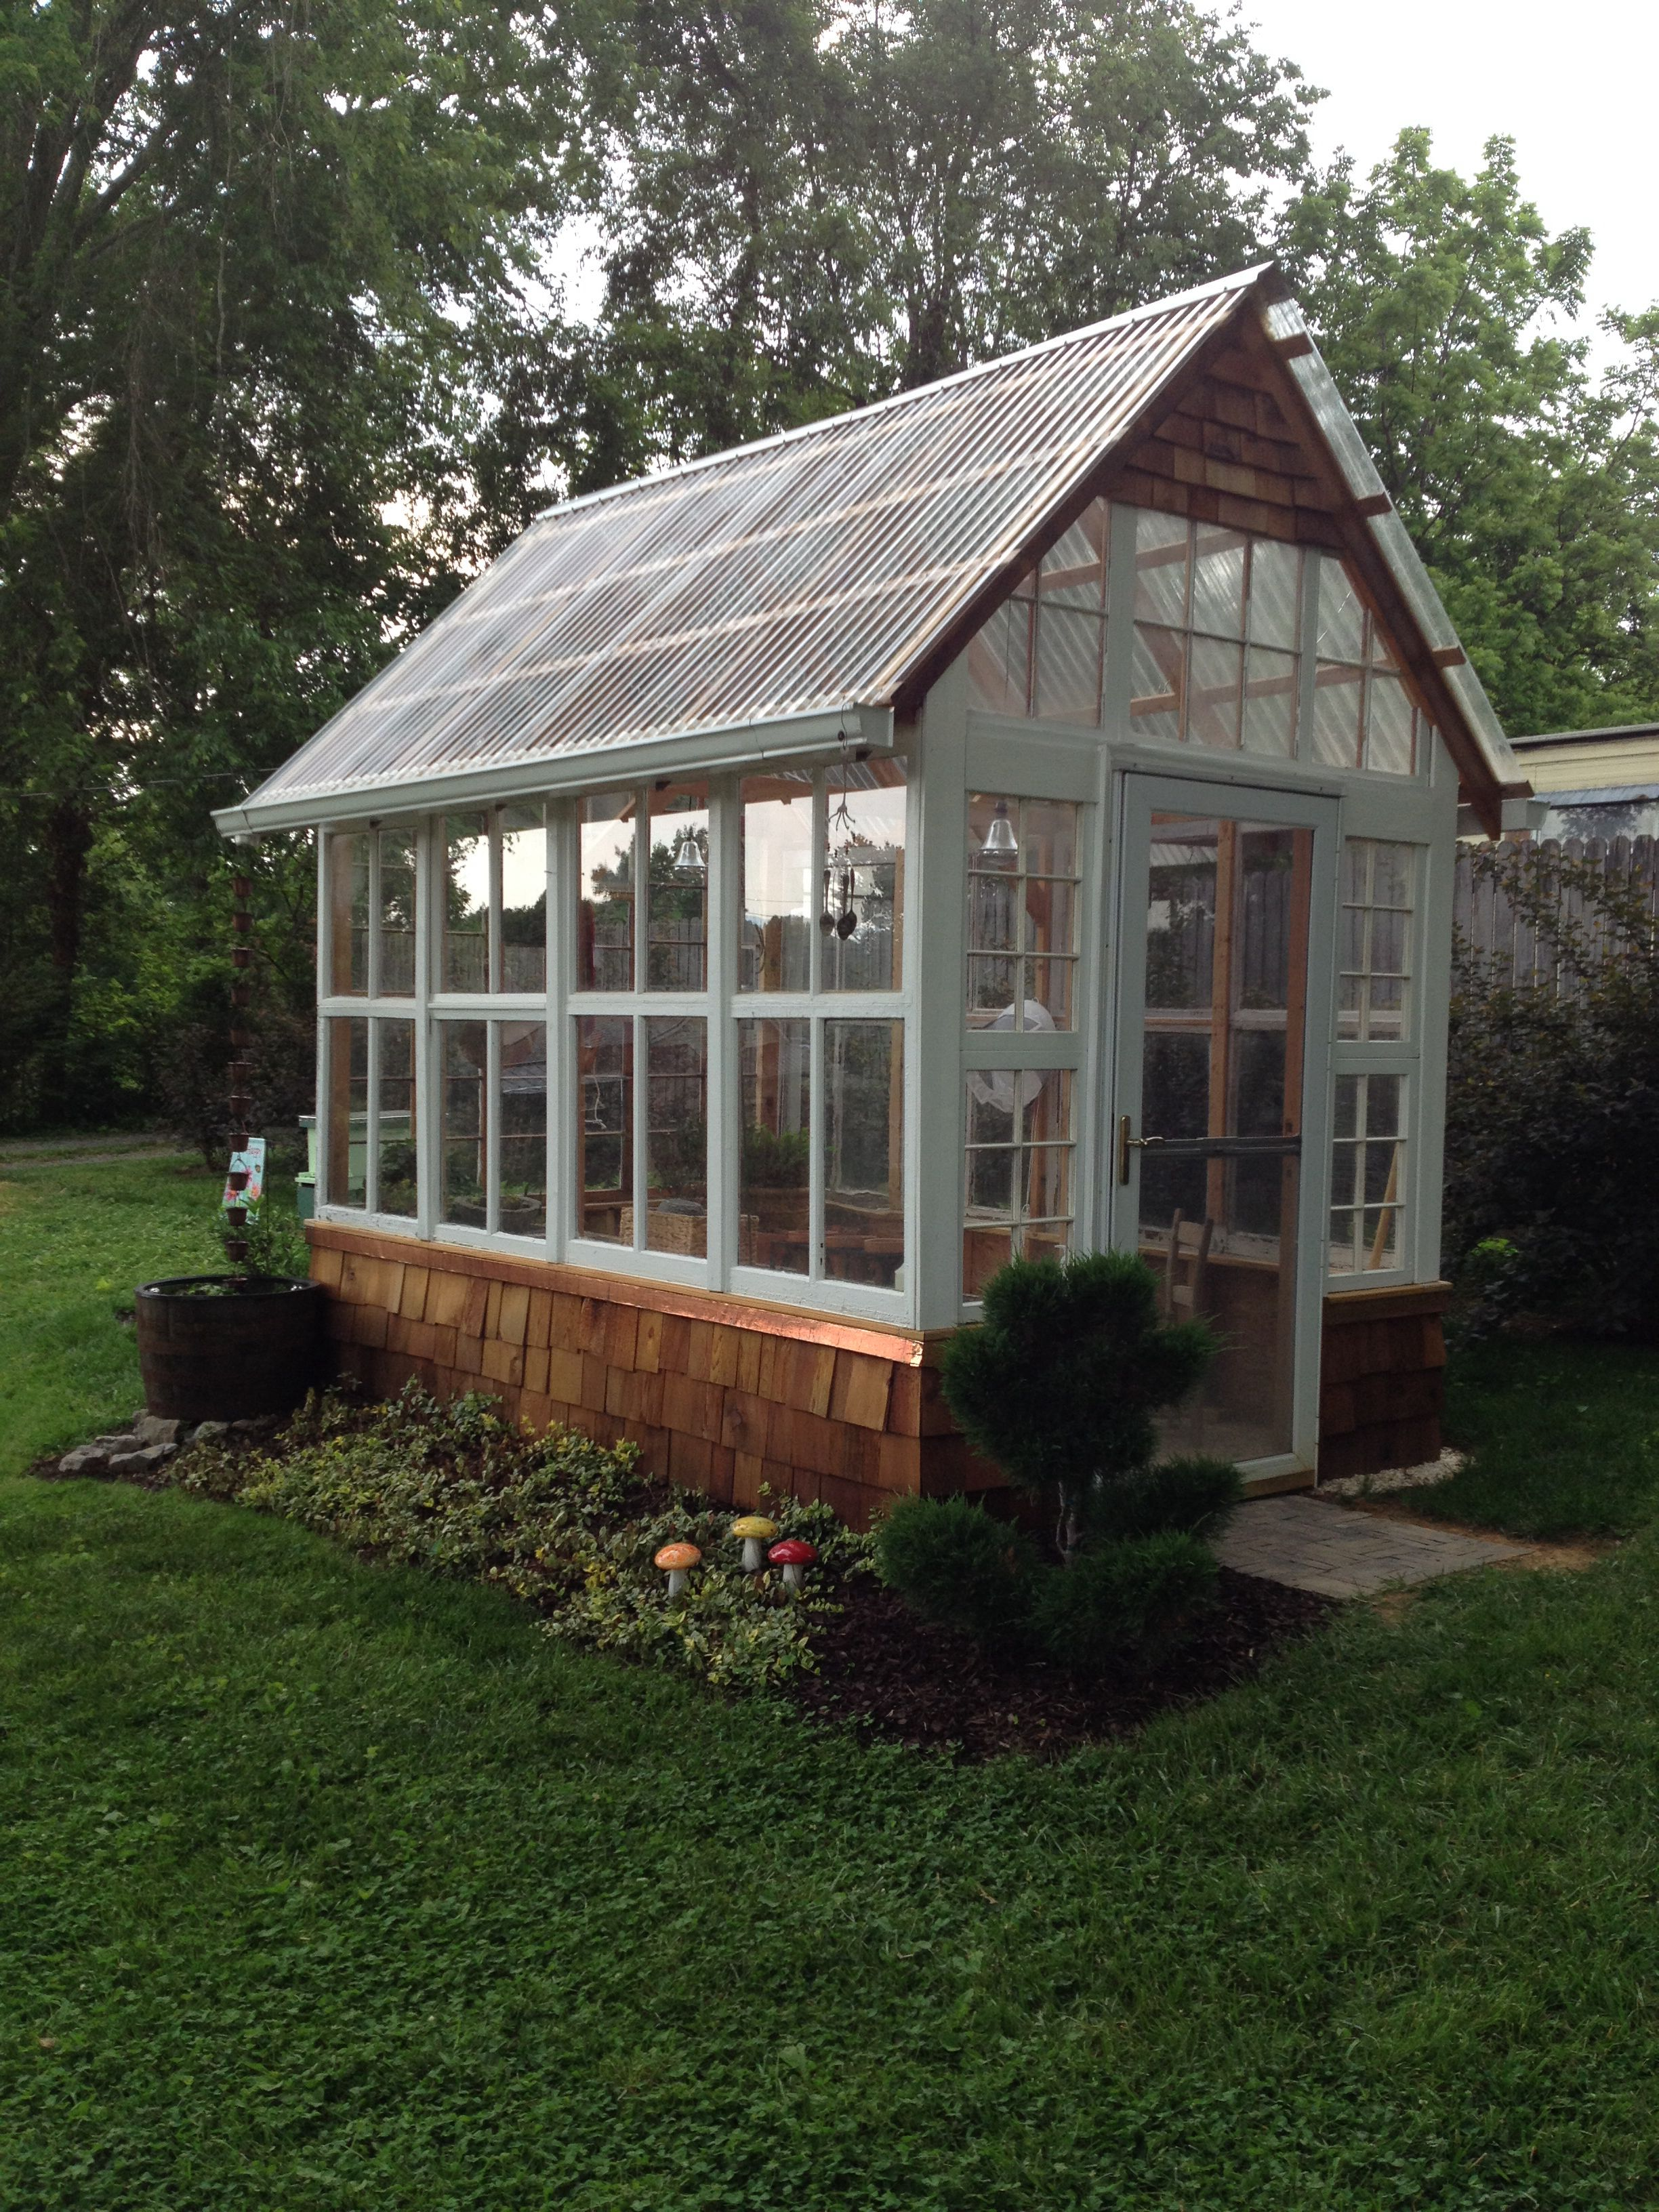 This Is A 7 X12 Greenhouse I Made Out Of Old Windows From My Home I Used Poly Carbonate Plastic R Backyard Greenhouse Diy Greenhouse Plans Build A Greenhouse